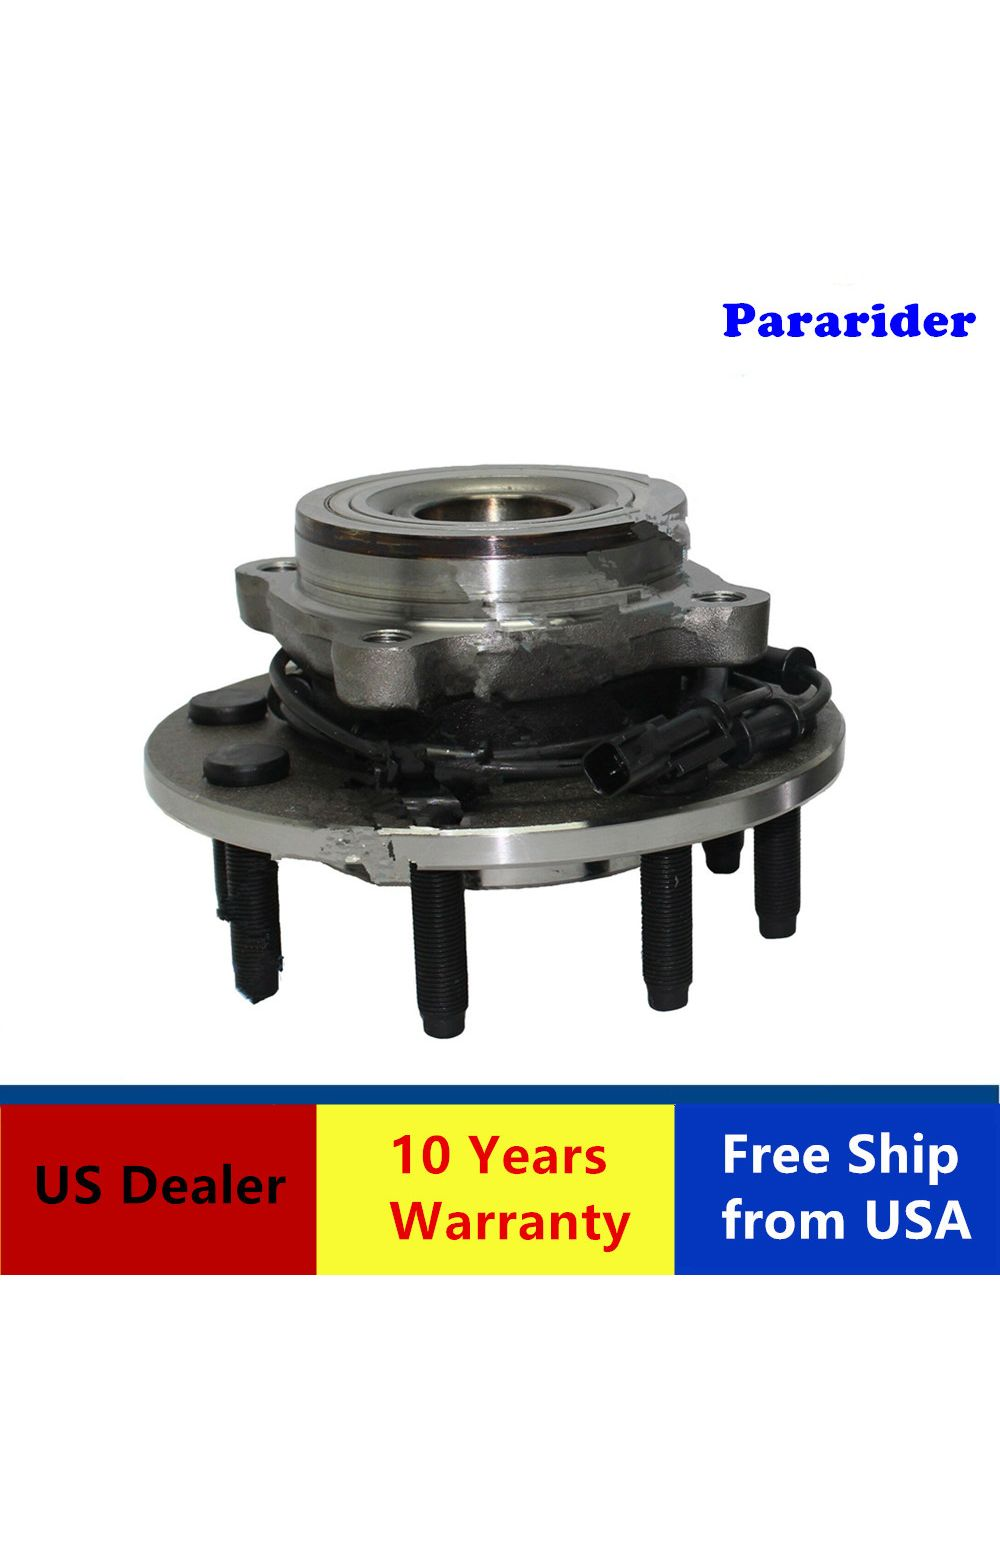 2012 fits Honda Ridgeline Front Wheel Bearing Note: AWD One Bearing Included with Two Years Warranty